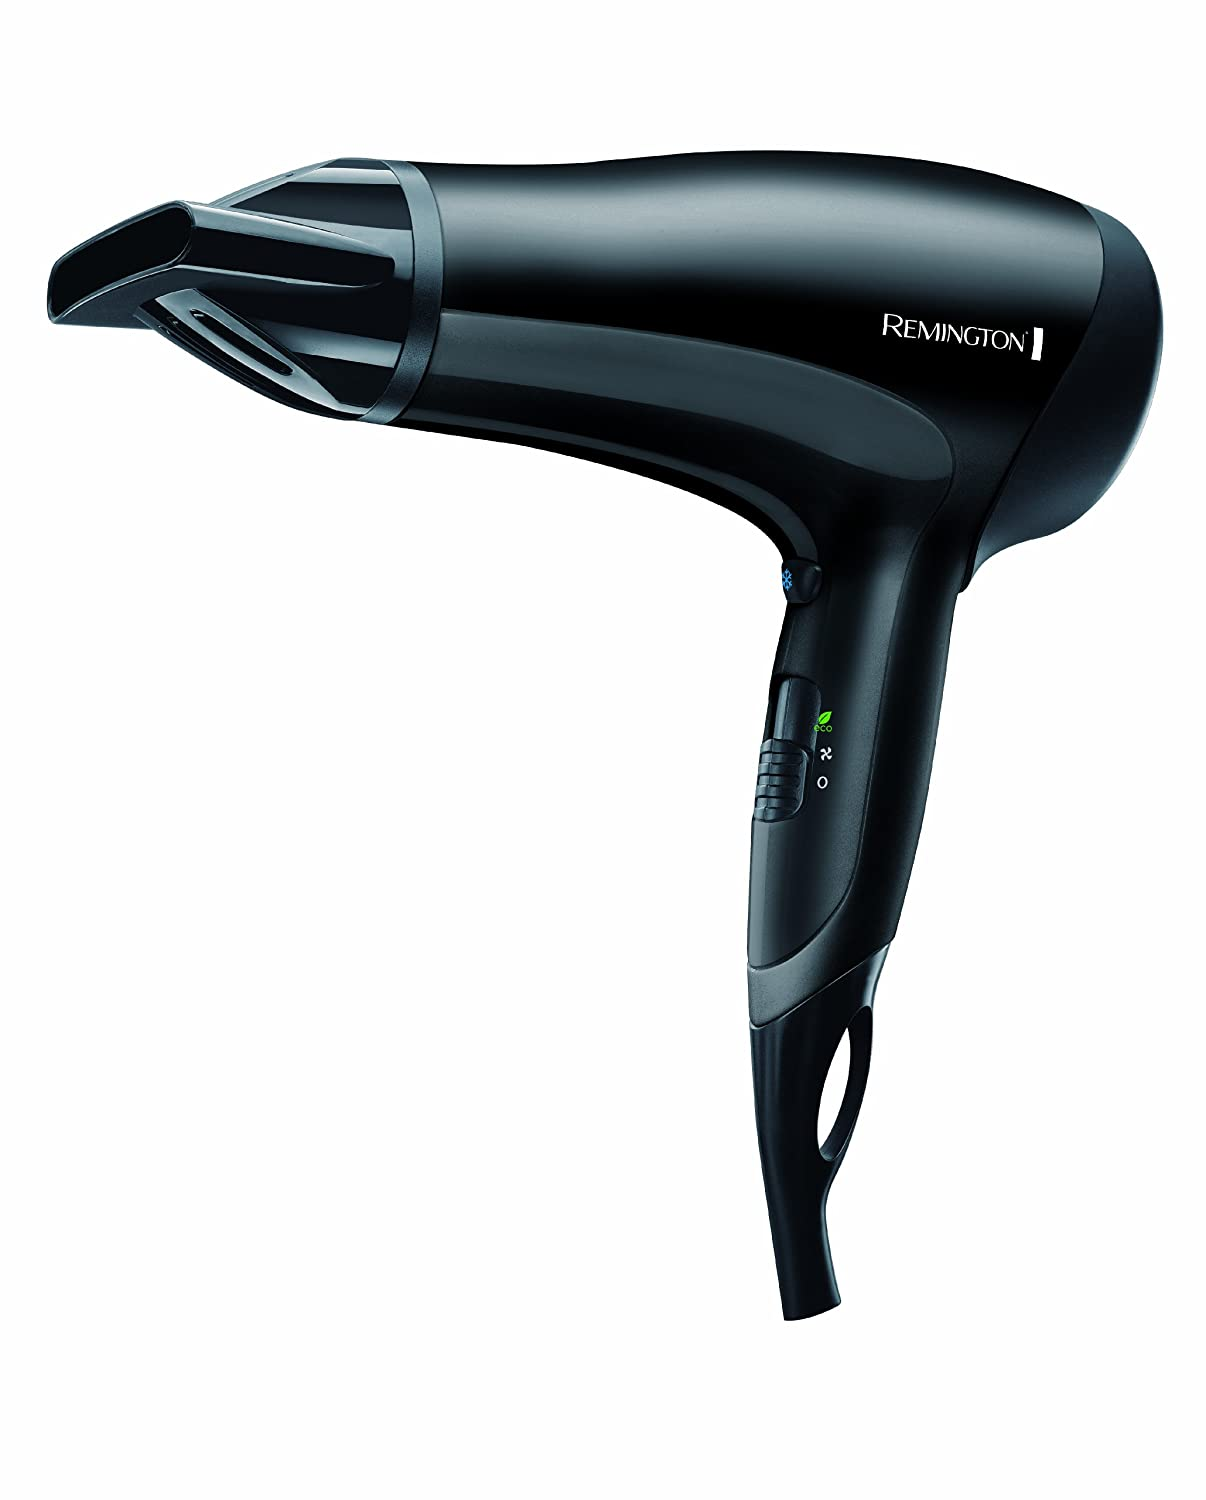 Remington D3010 Hair Dryer